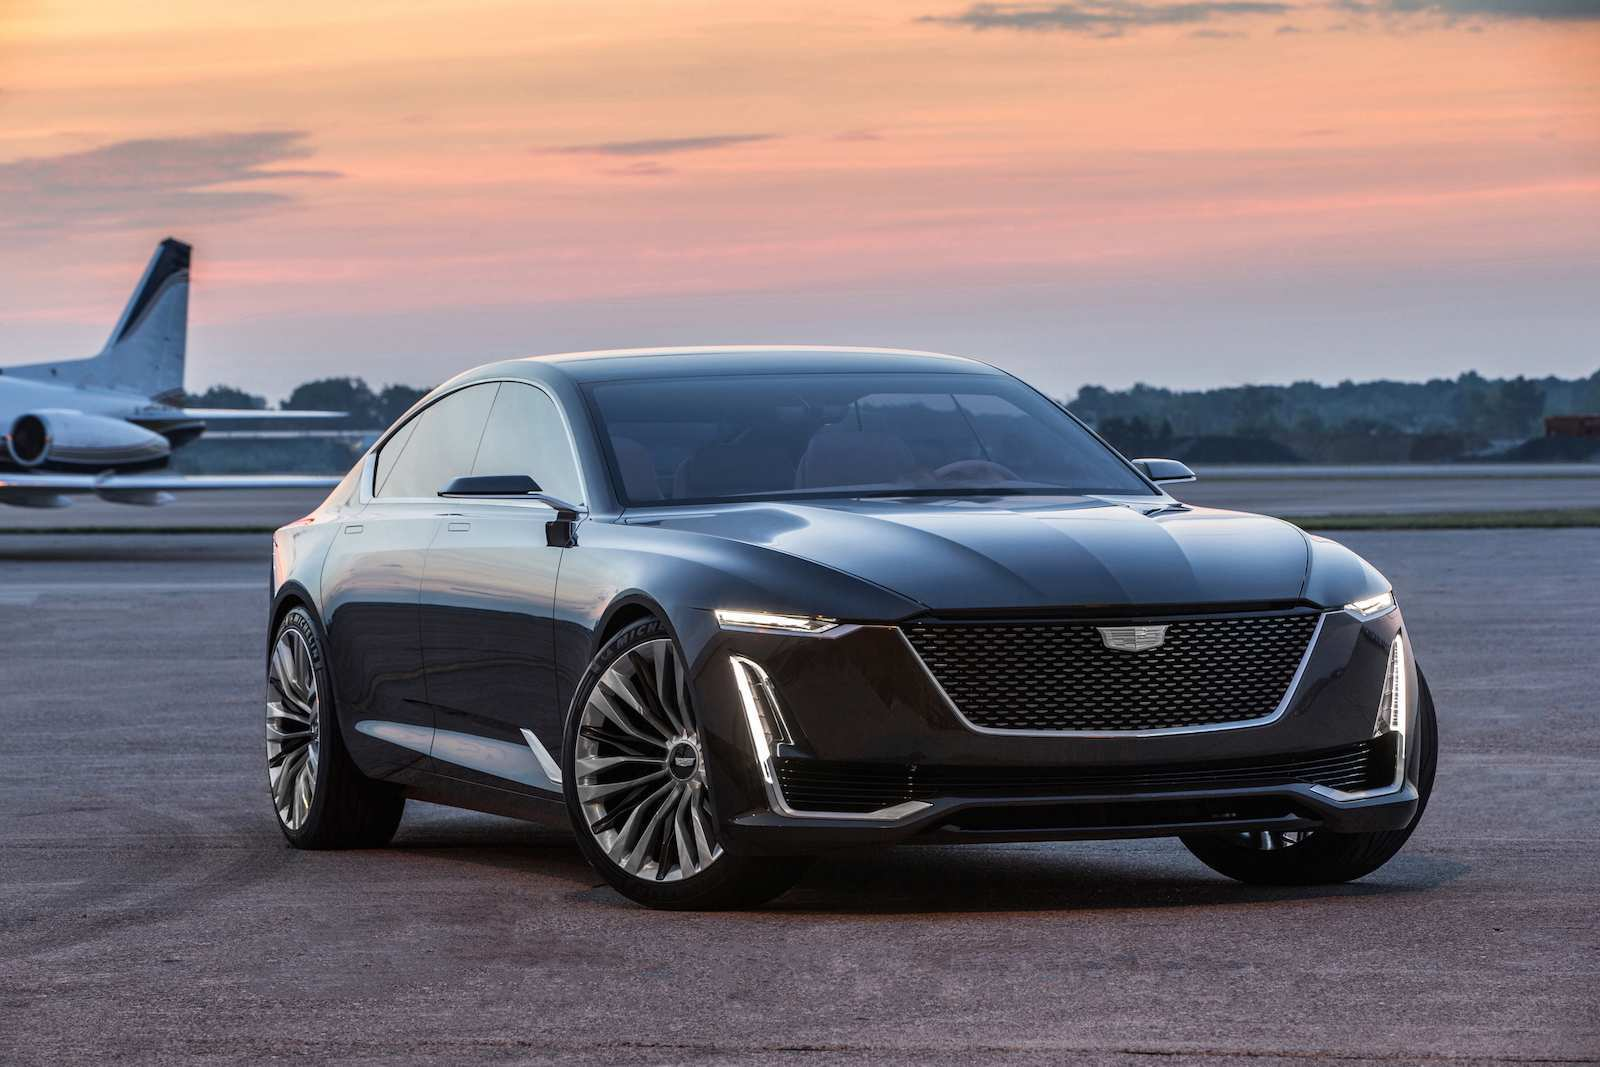 64 The Best 2020 Cadillac Ct5 Release Date Wallpaper